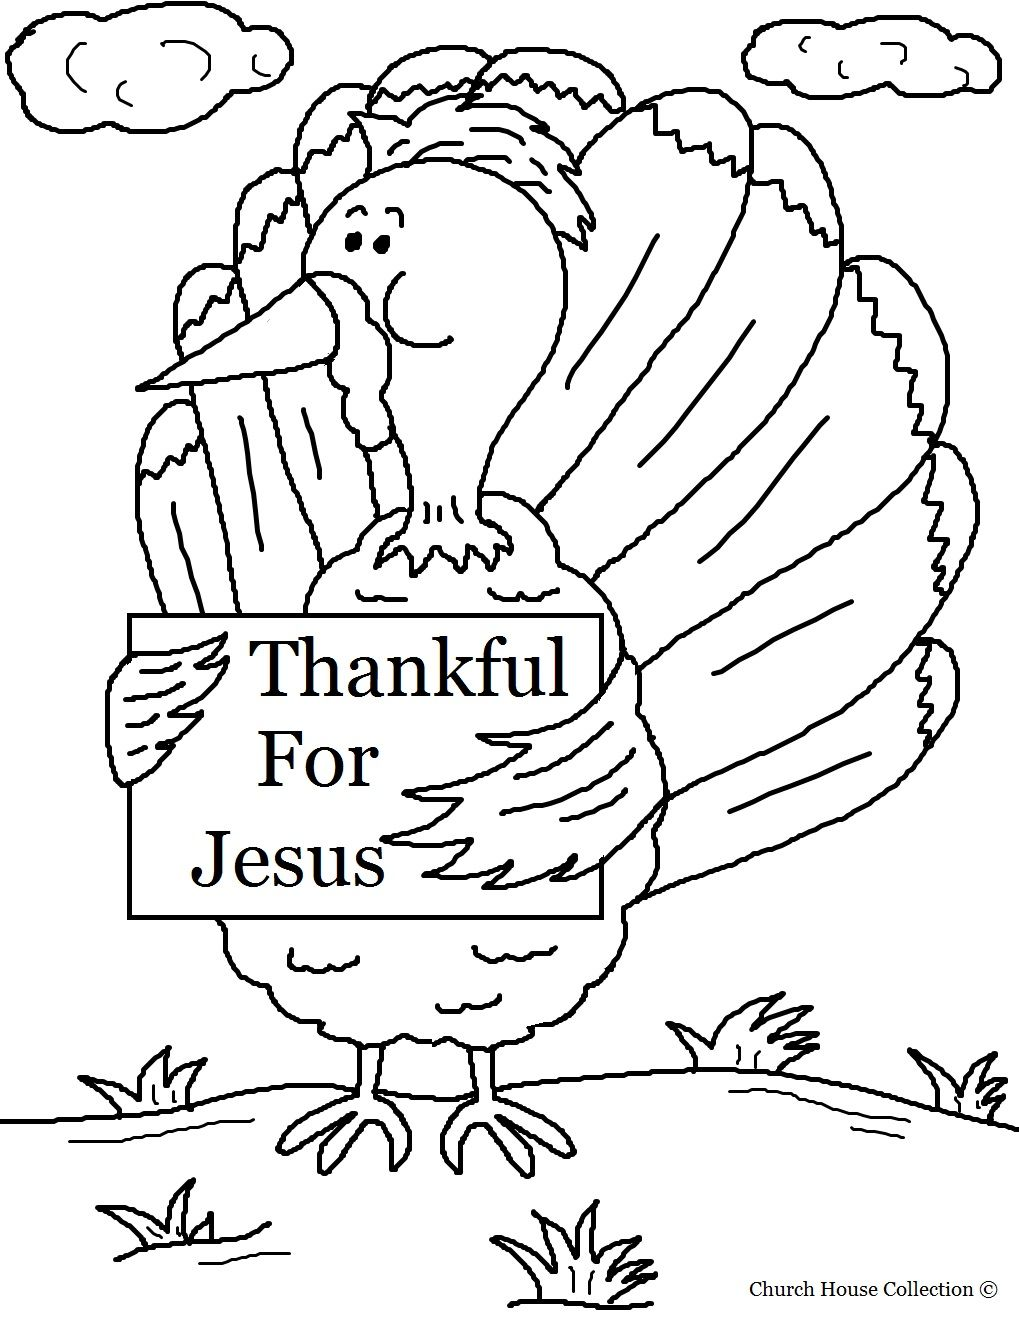 christian thanksgiving coloring pages Christian Thanksgiving Printables | Church House Collection Blog  christian thanksgiving coloring pages